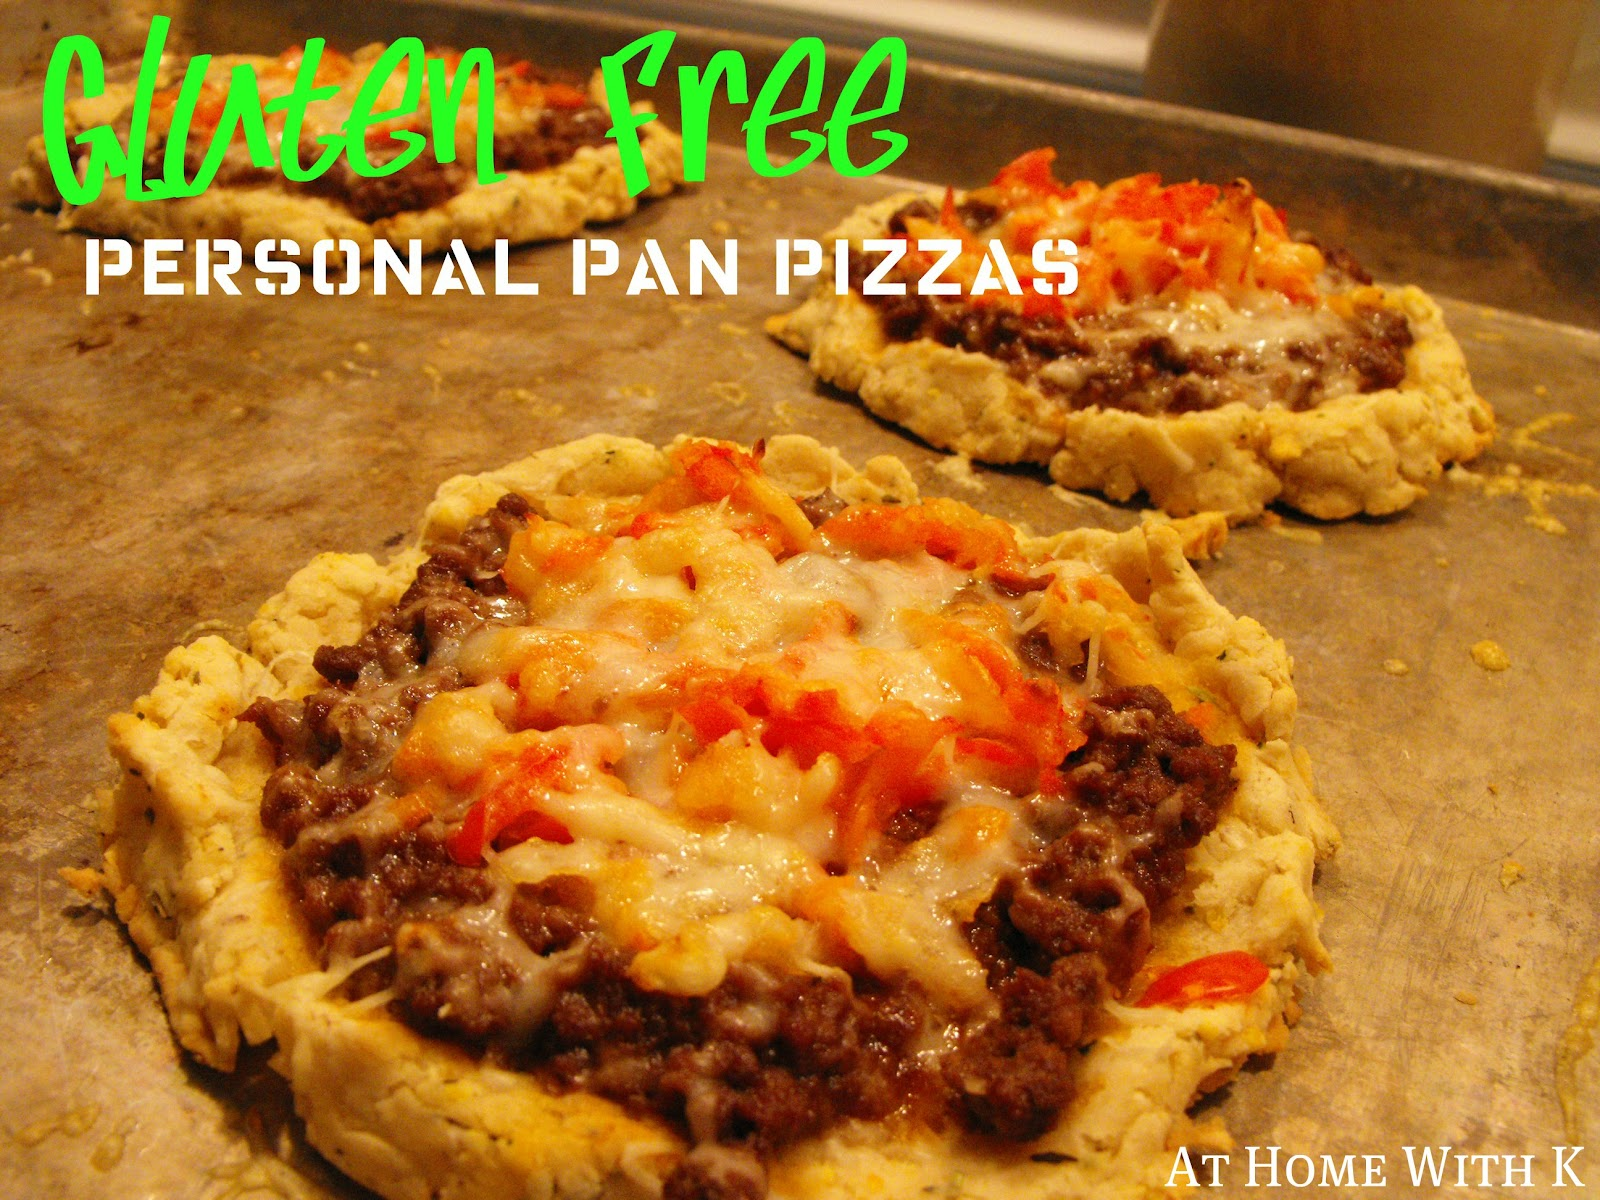 At Home With K: Gluten Free Personal Pan Pizzas